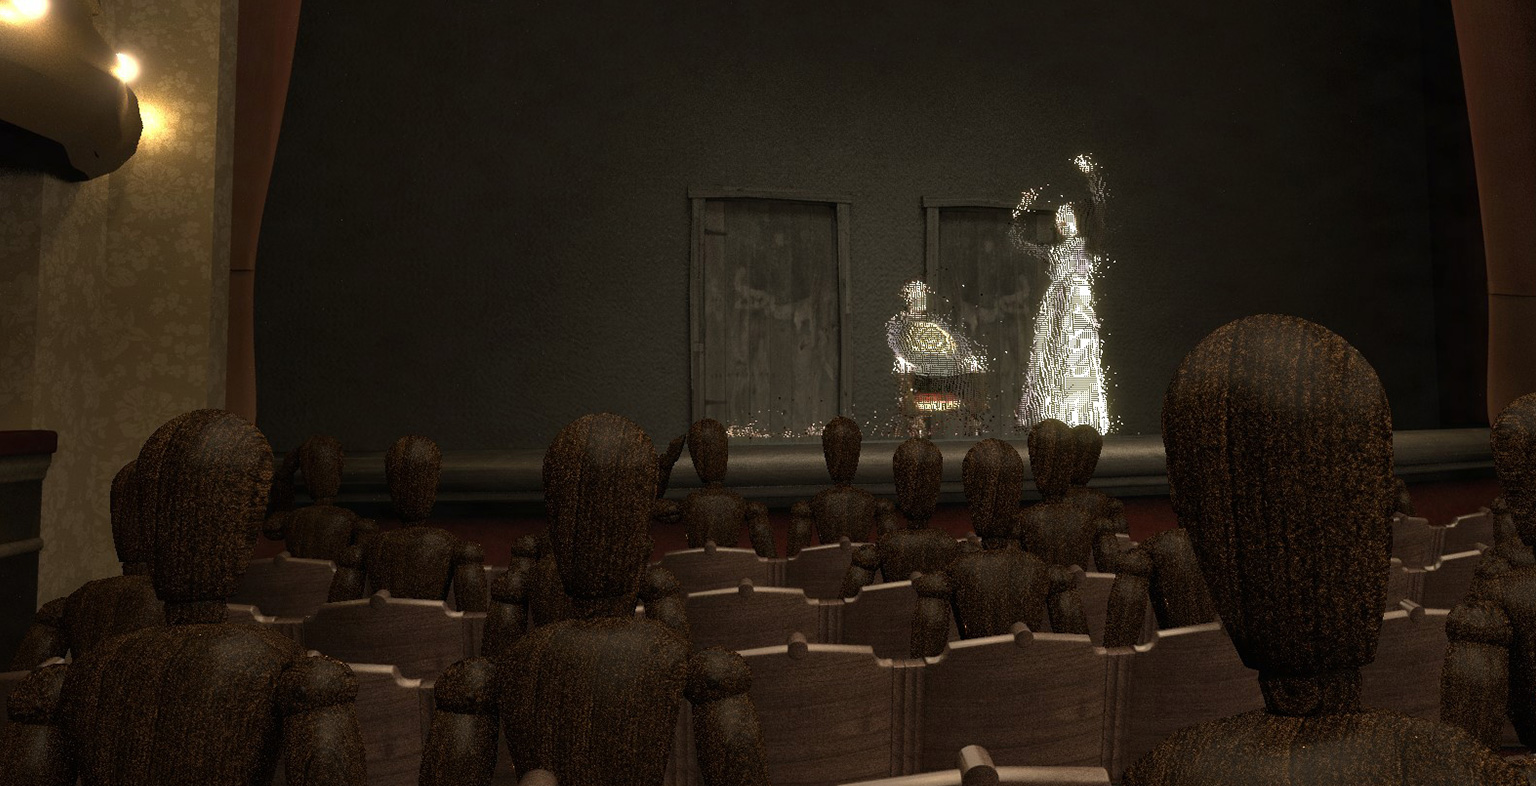 image of wooden models showing a stage i the background with two actors on it